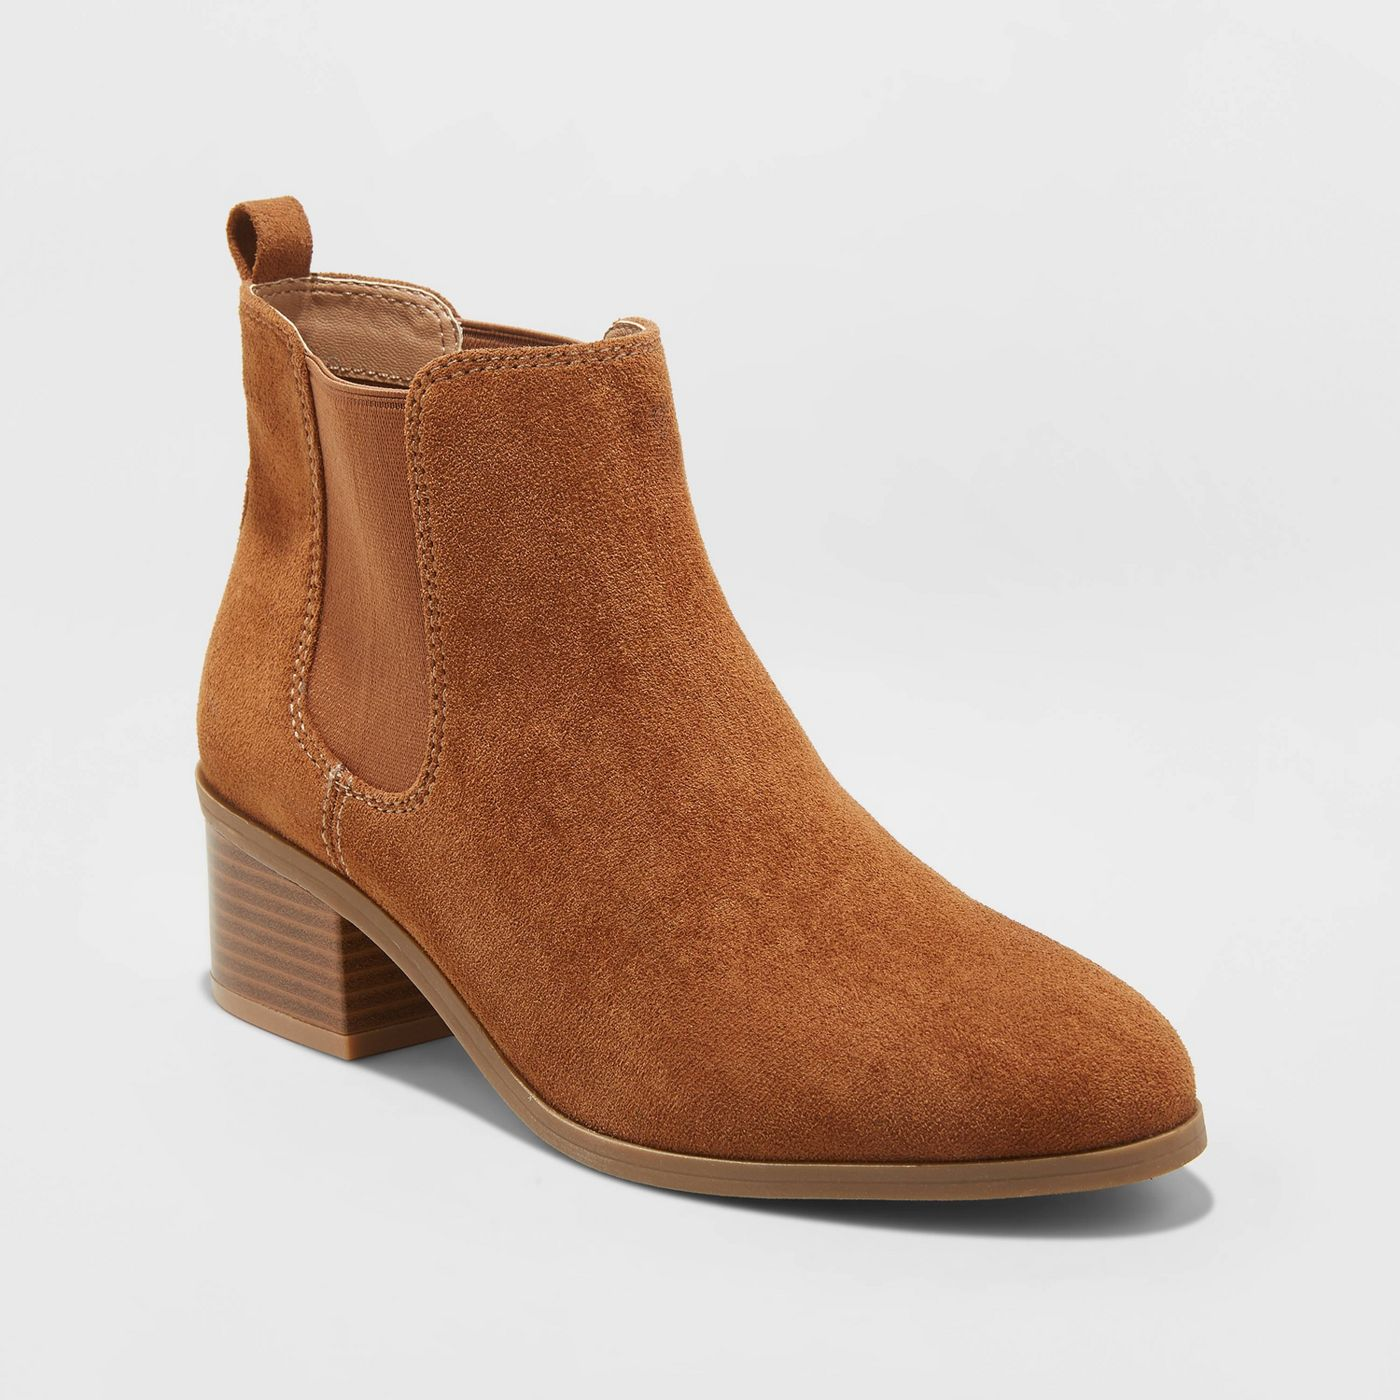 Check out this budget friendly popular boot style; for 2019 found at Target with beauty and lifestyle blogger, Kendra Stanton.